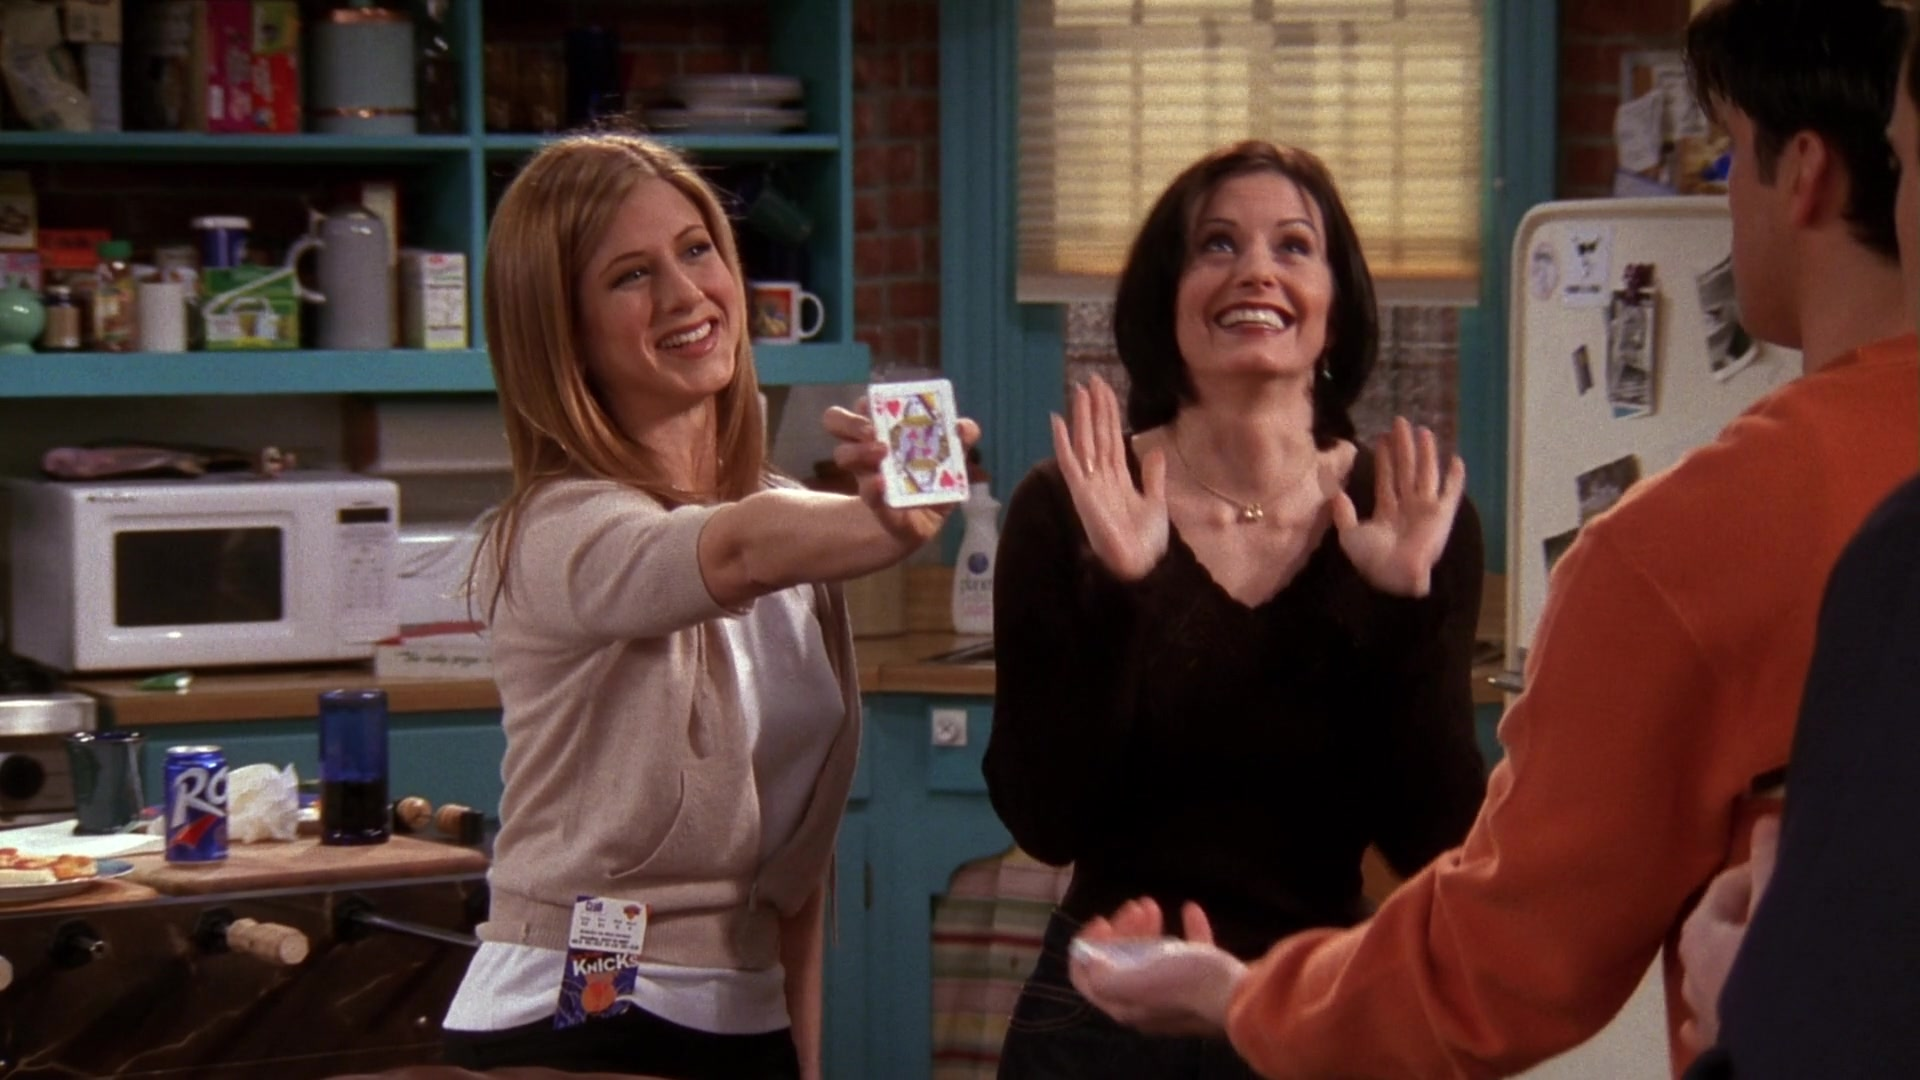 RC Cola and Knick Basketball Tickets in Friends Season 4